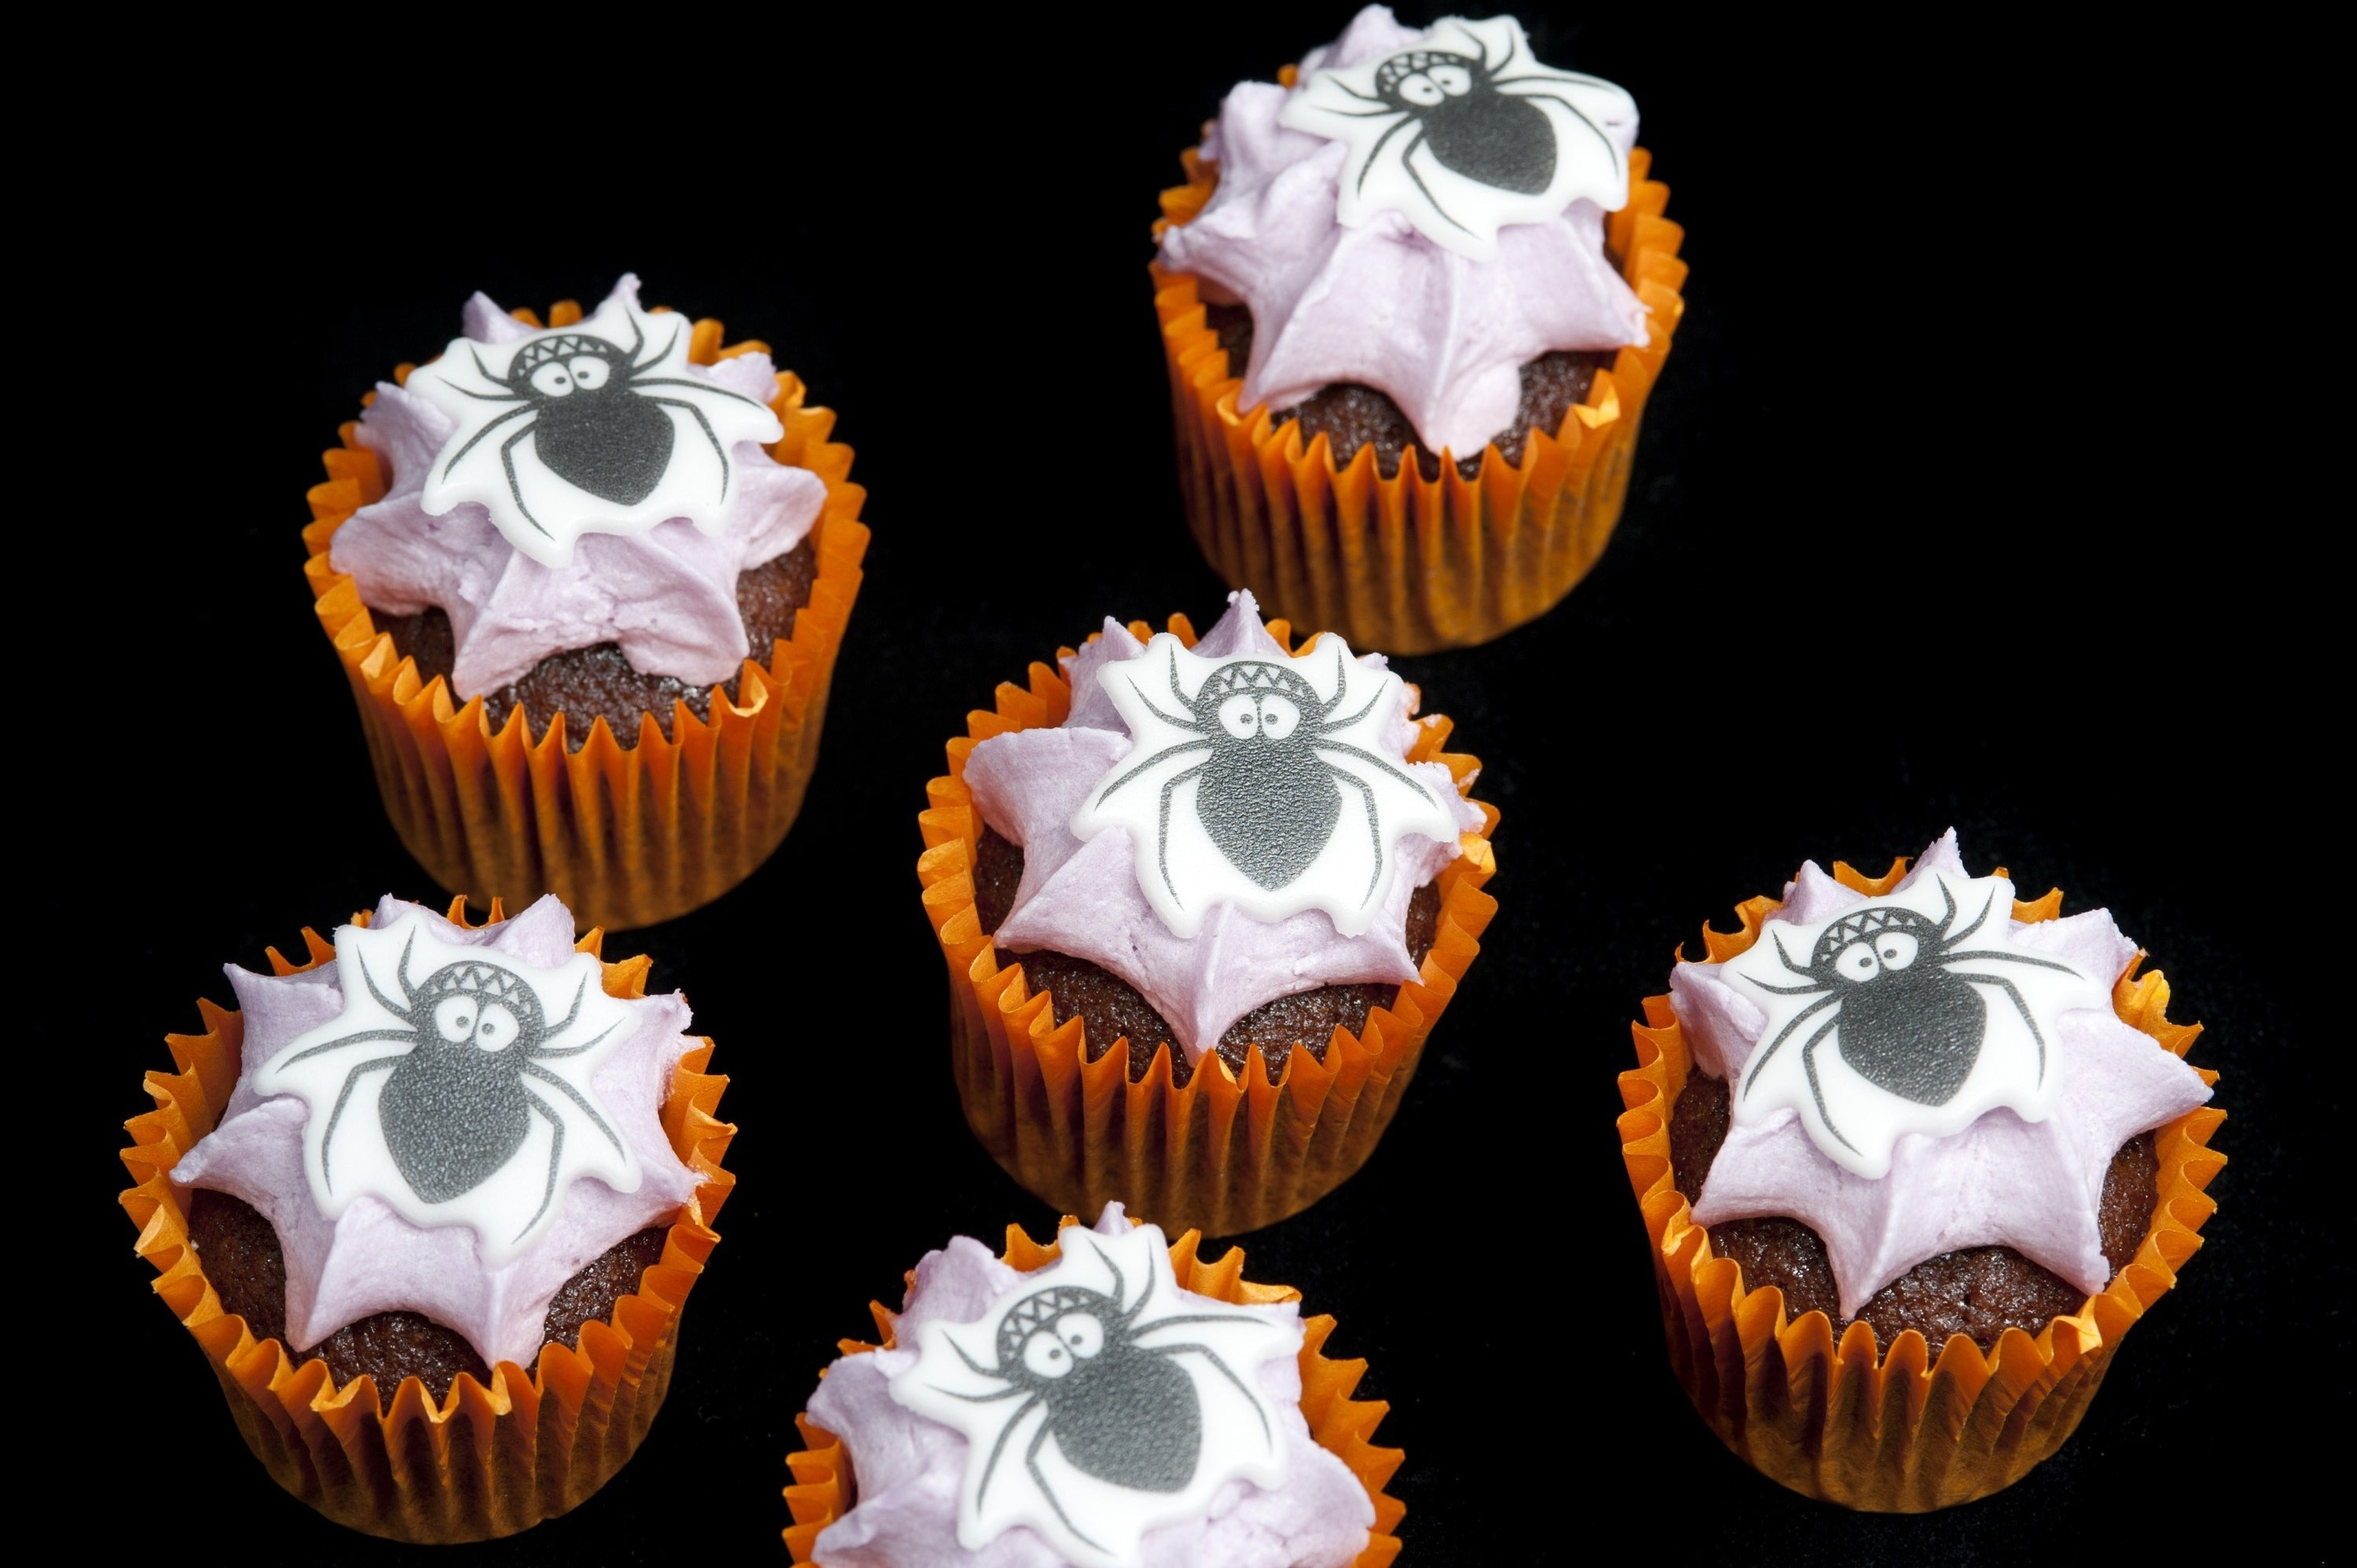 cute halloween mini cakes decorated with spider icing decorations